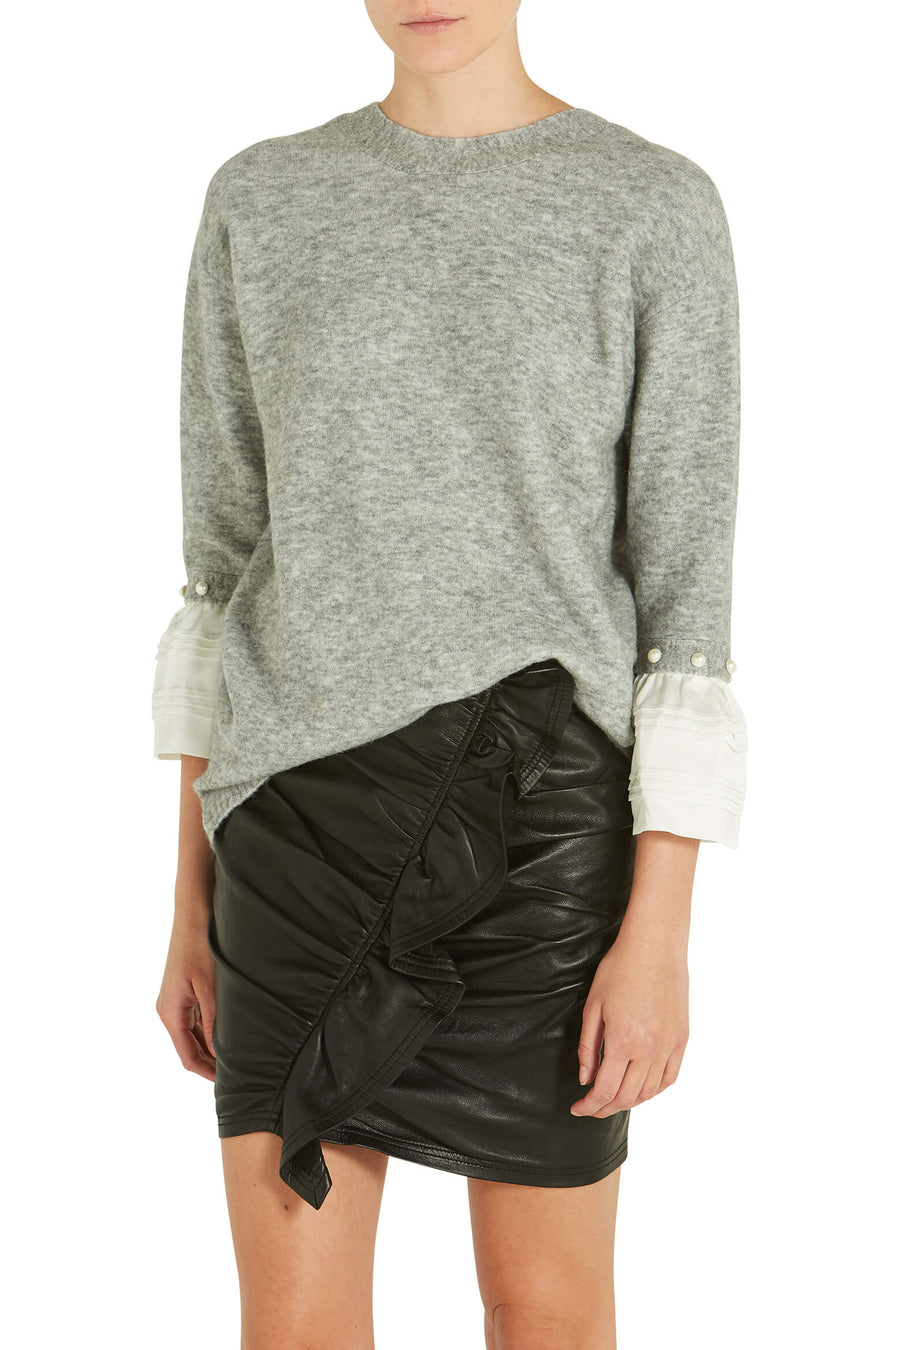 3.1 Phillip Lim Lofty V Neck Sweater in Grey from The New Trend